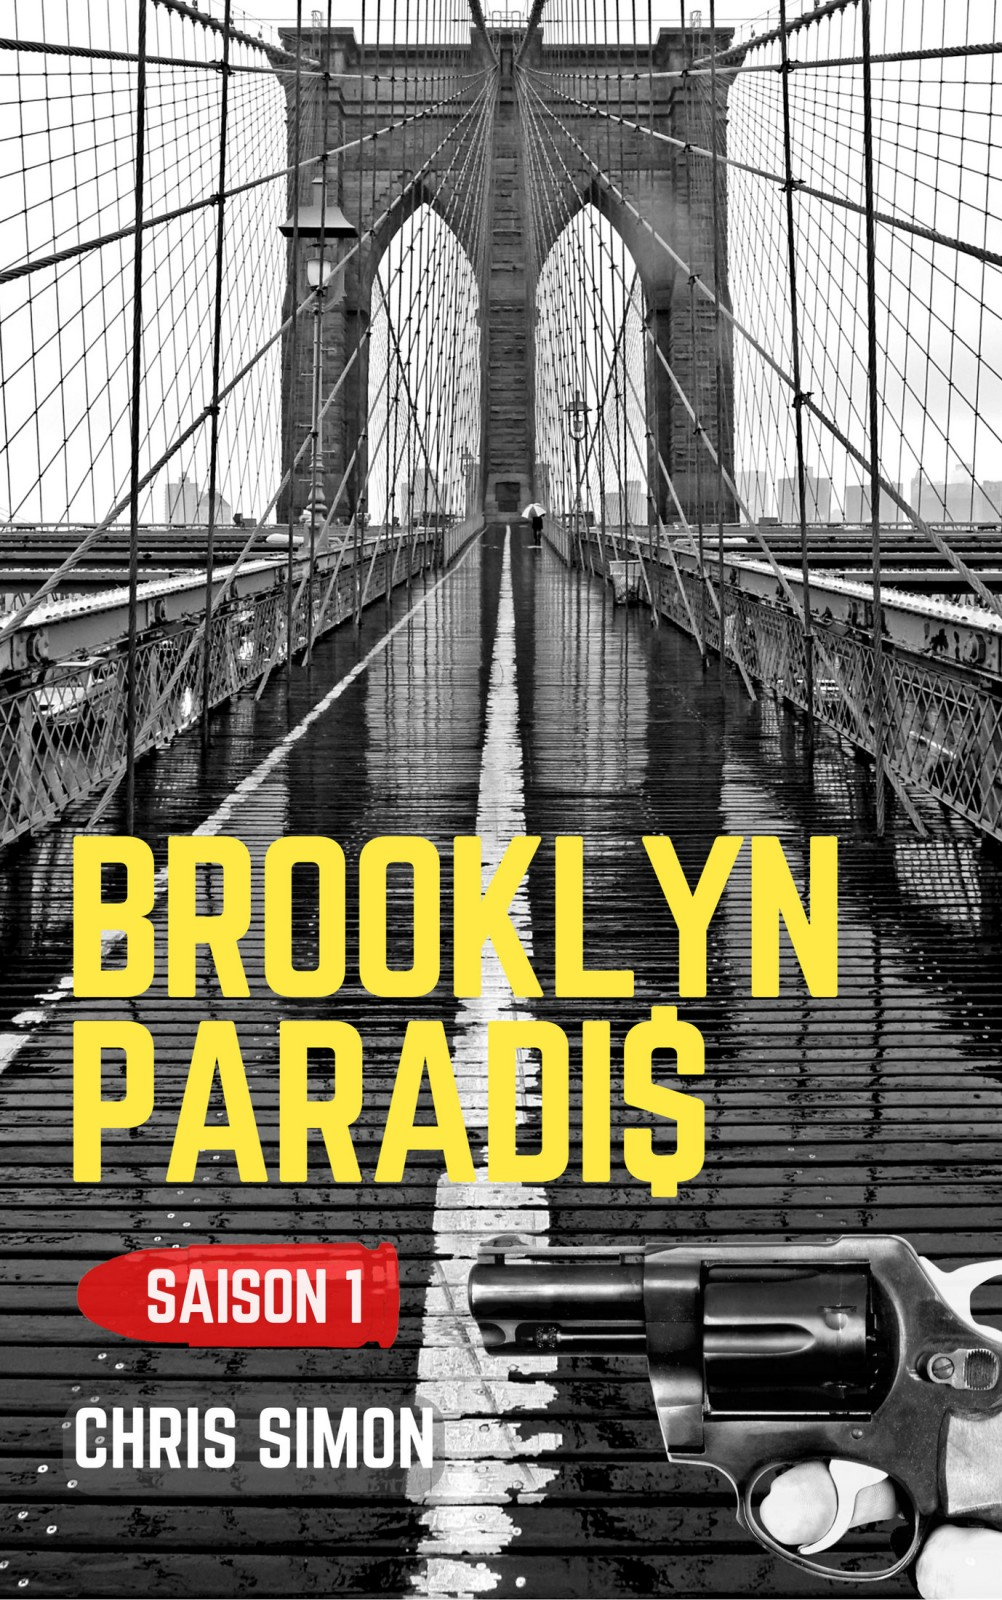 Brooklyn paradis – Chris Simon - AutoEdition